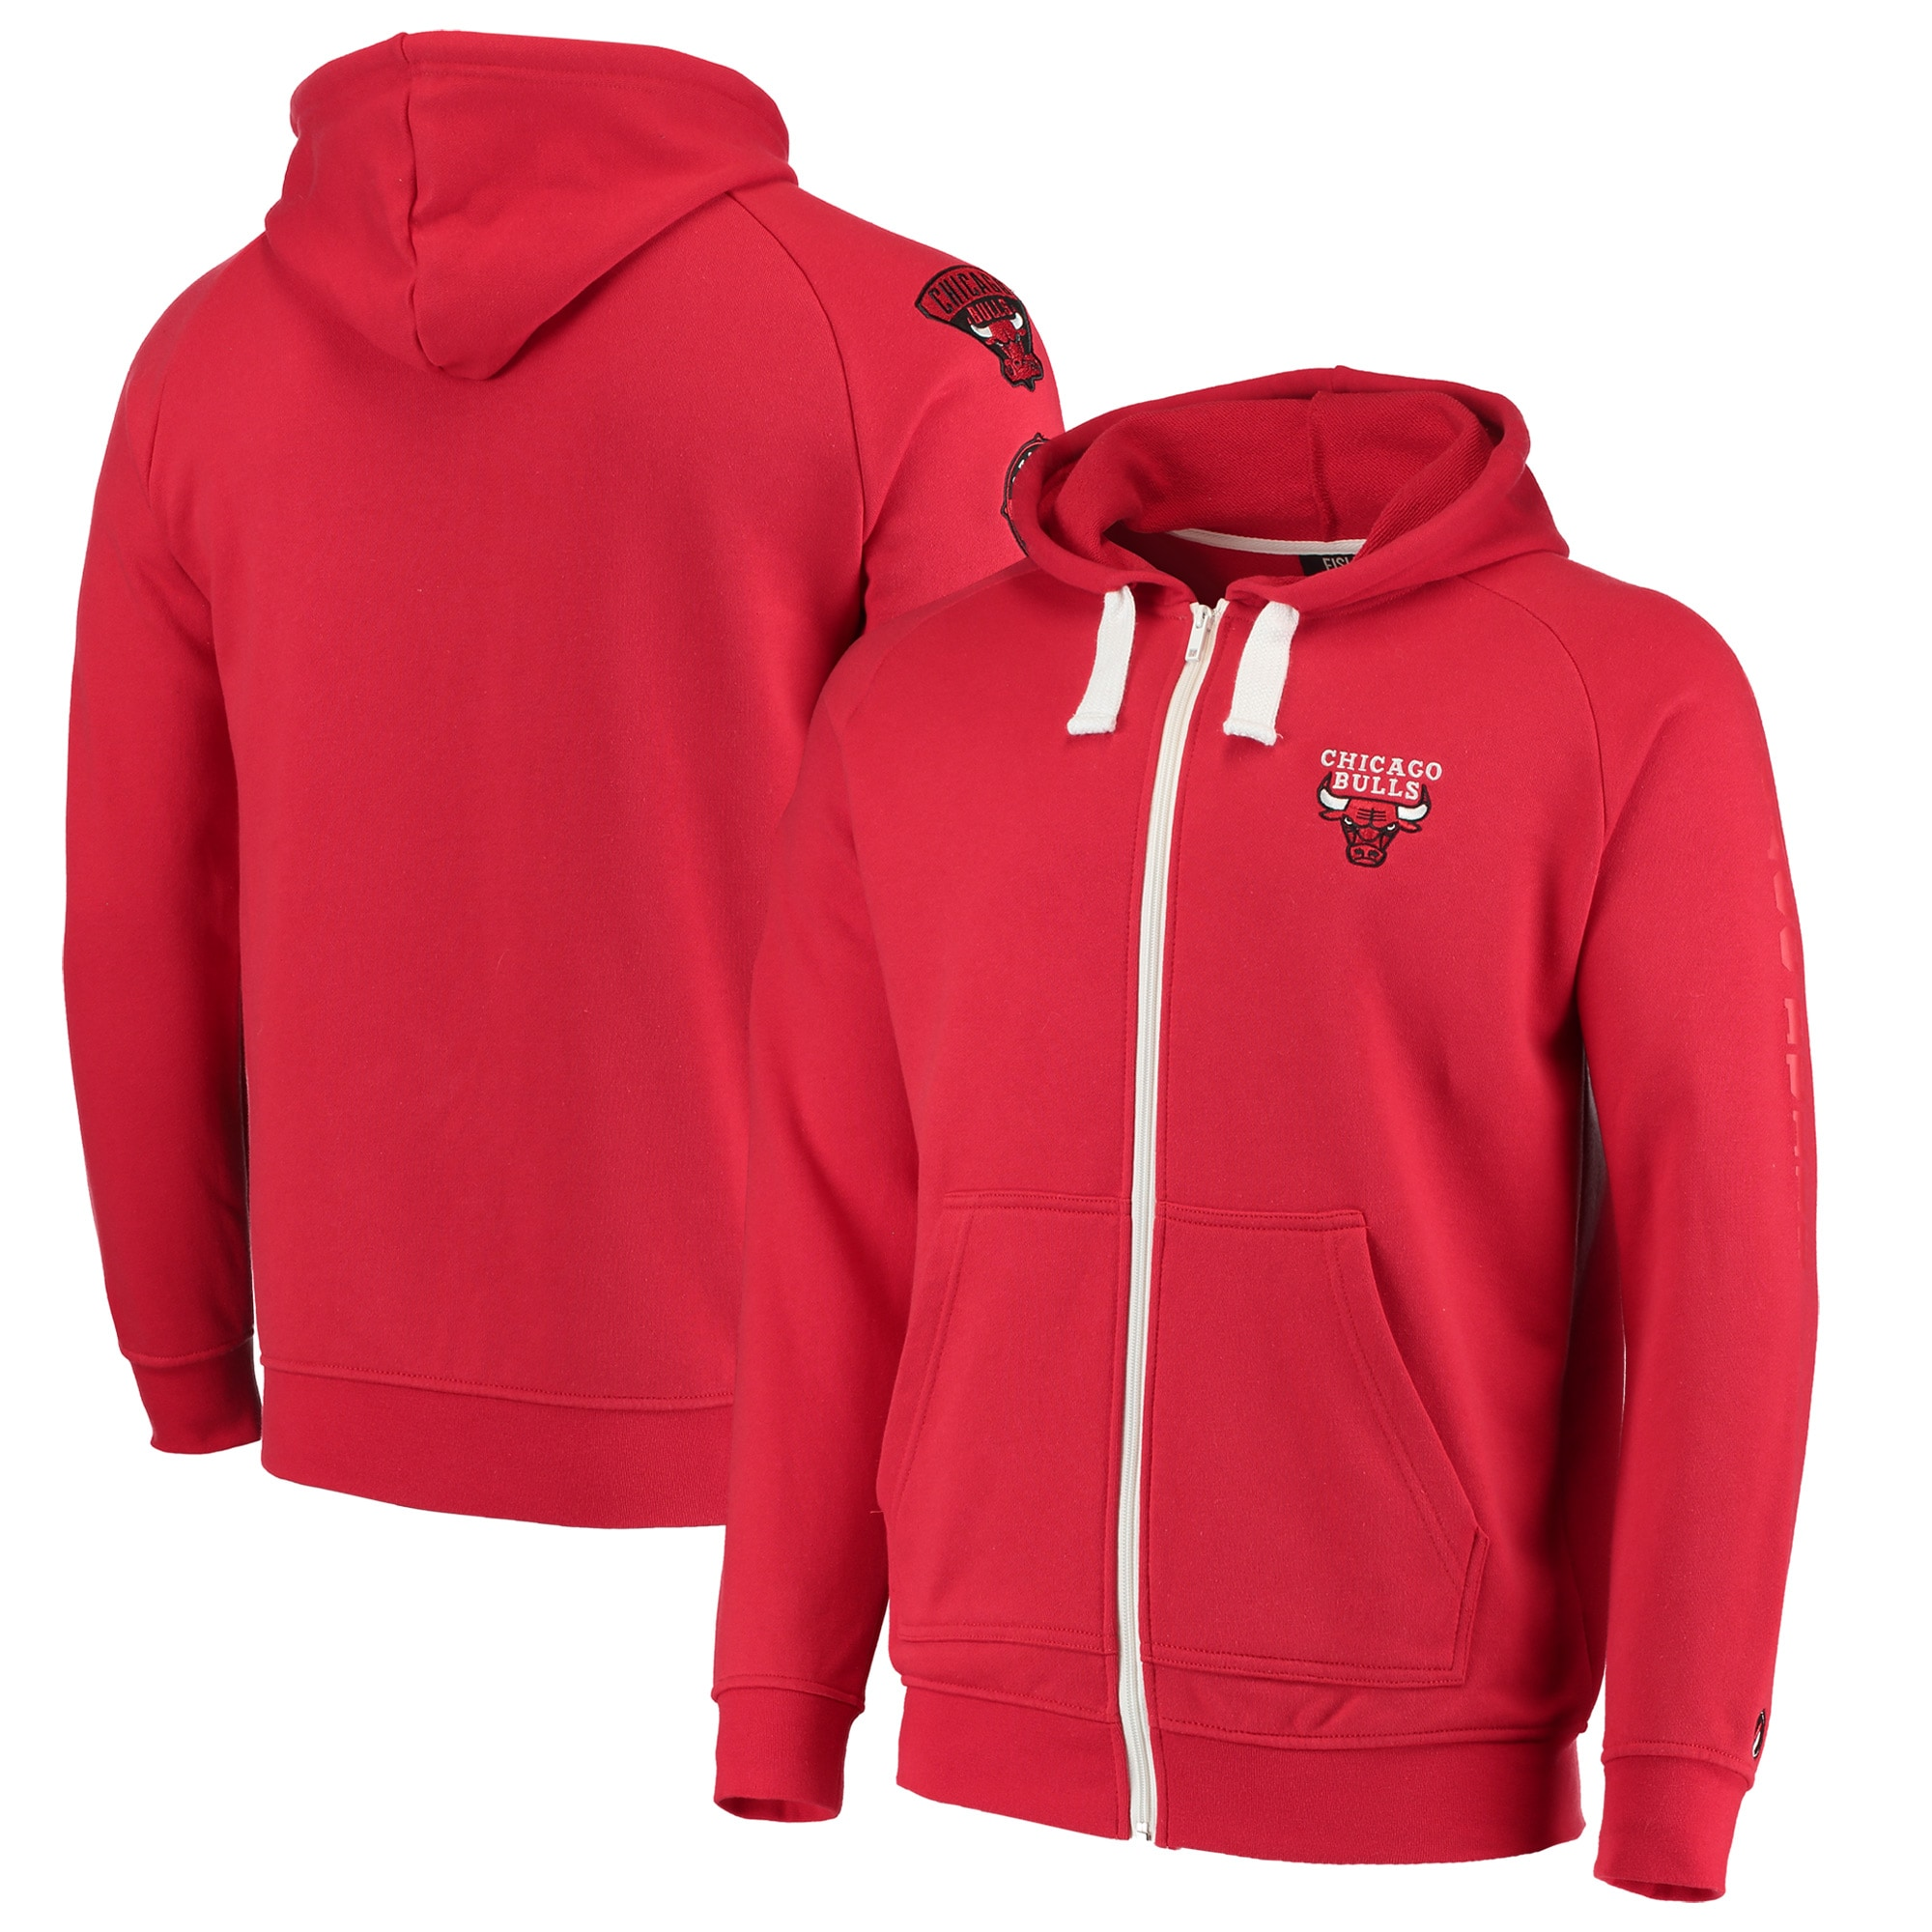 Large Under Armour Adult Men NCAA French Terry Full Zip Black